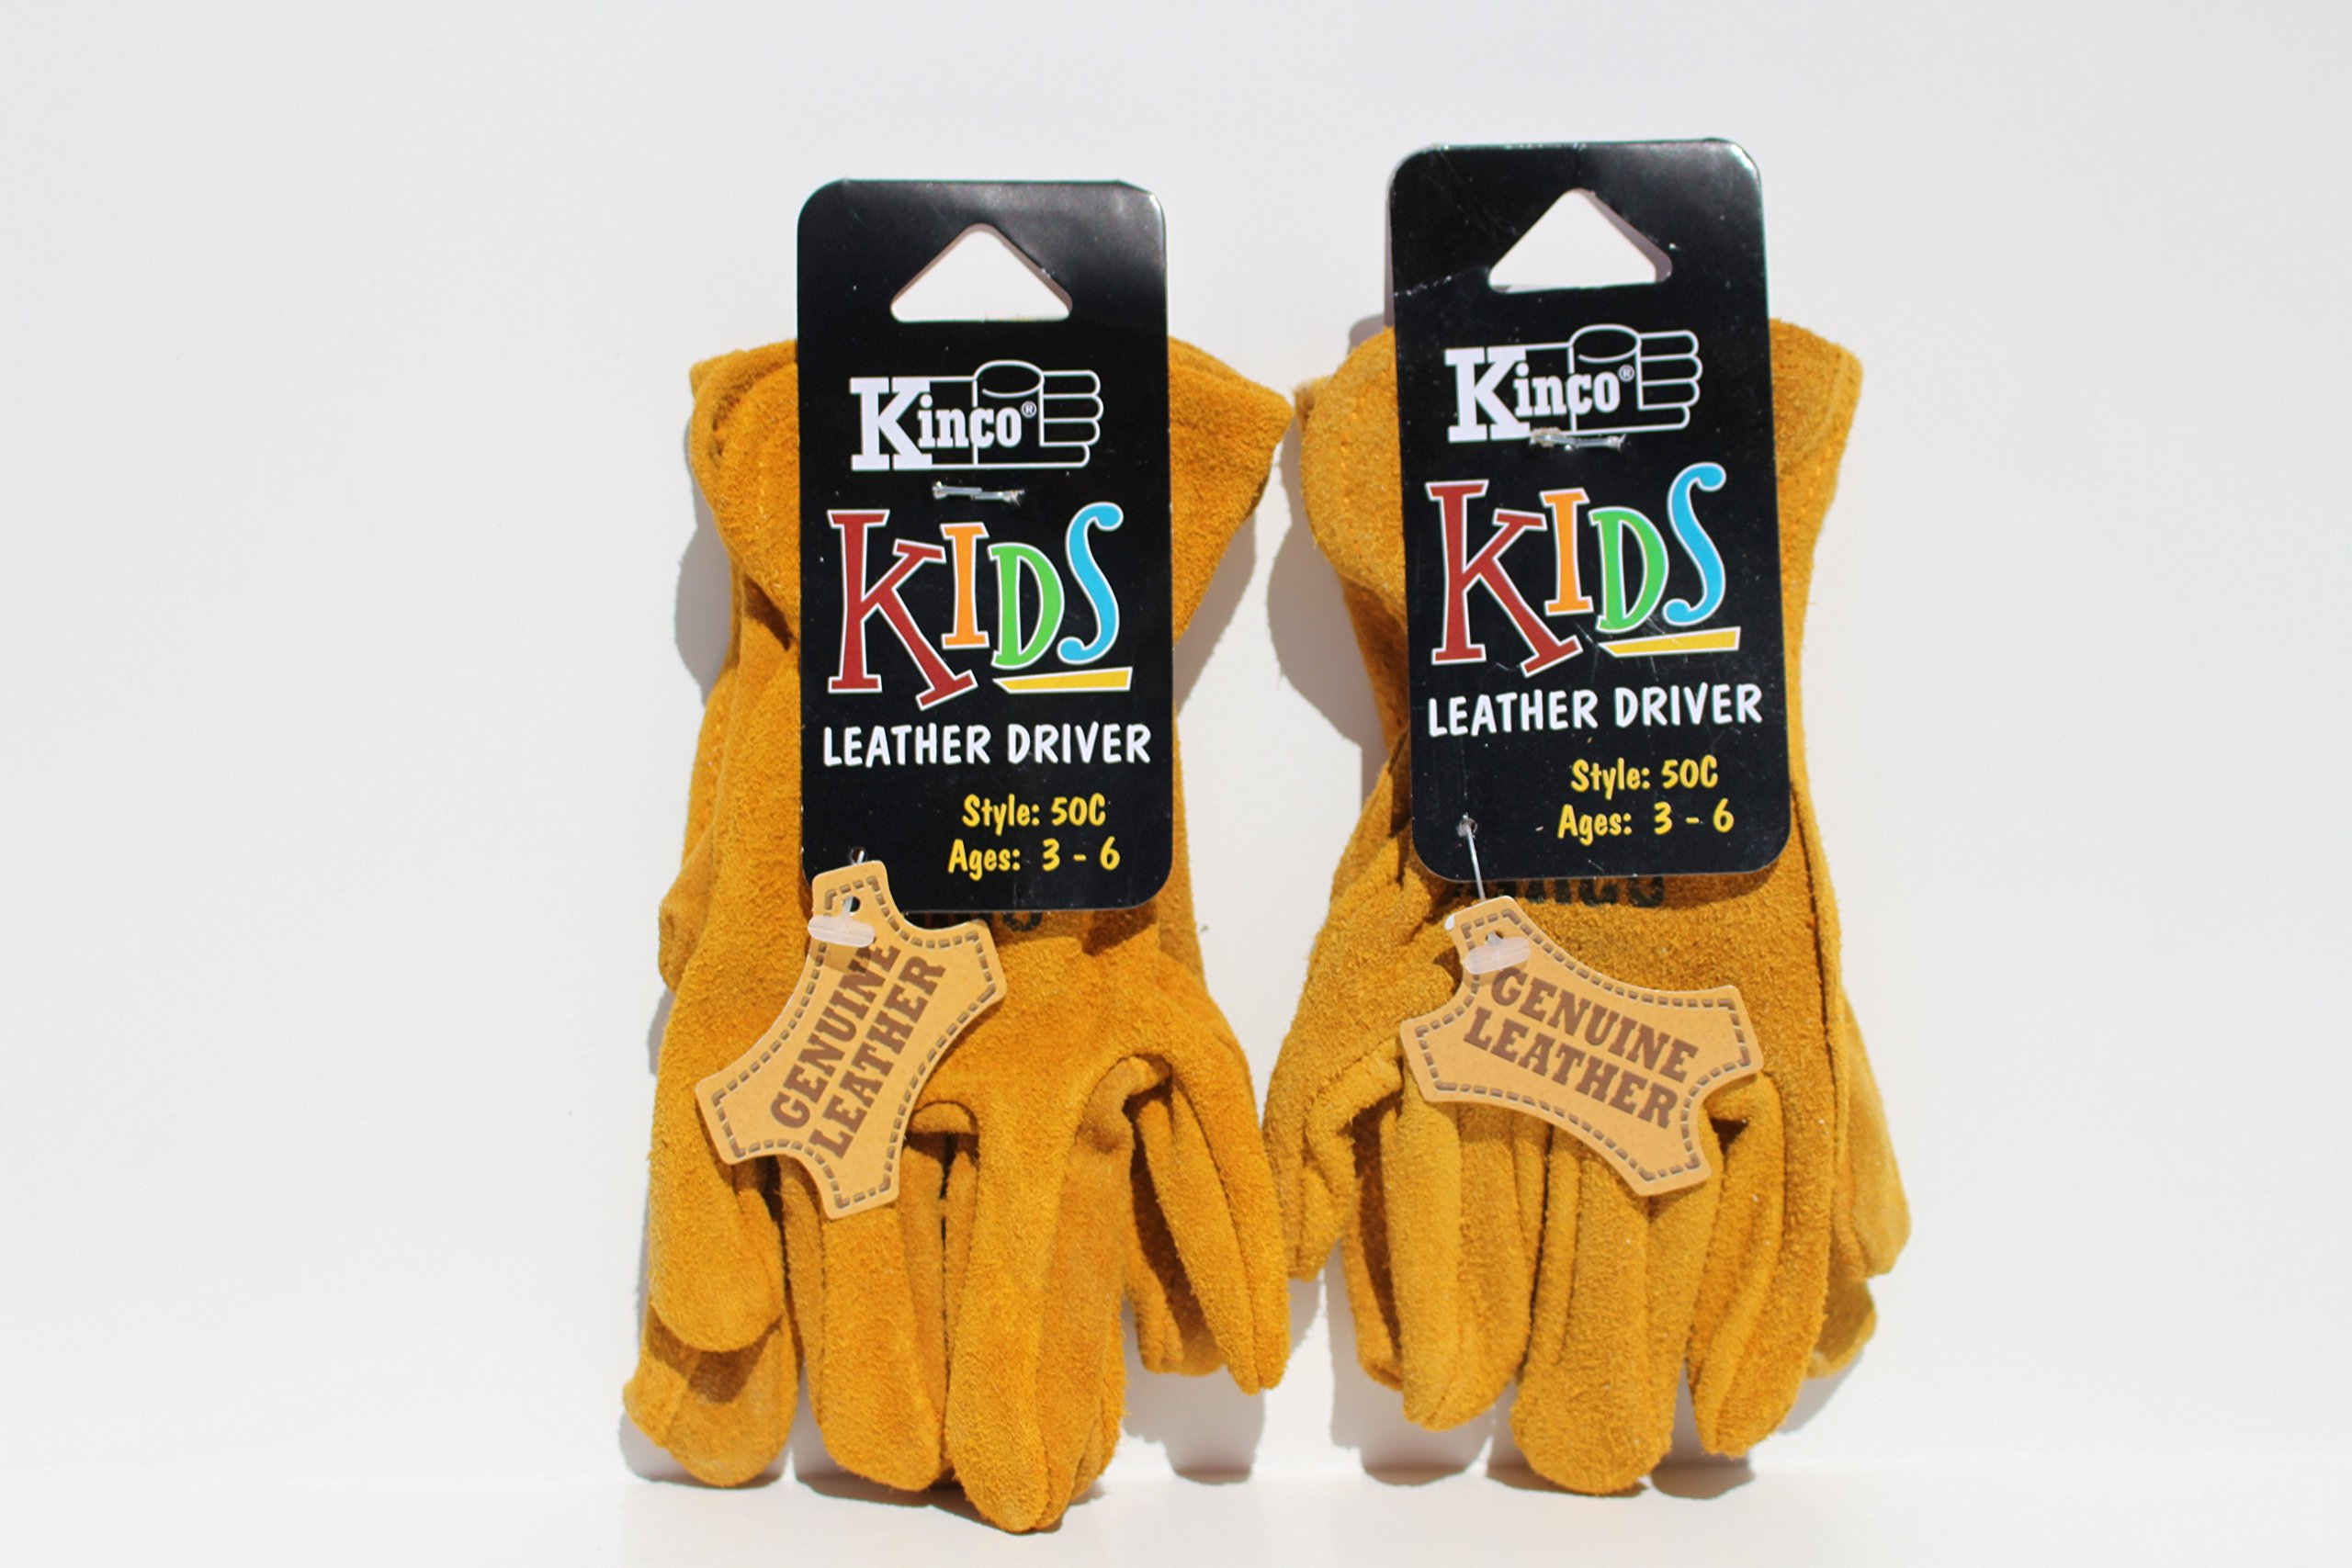 Kinco 50-C Work Gloves for Kids (Pack of 2). Ages 2-4 - 100% Real Cowhide Suede Leather - Perfect Hand Protection - Gardening Gloves for Kids.